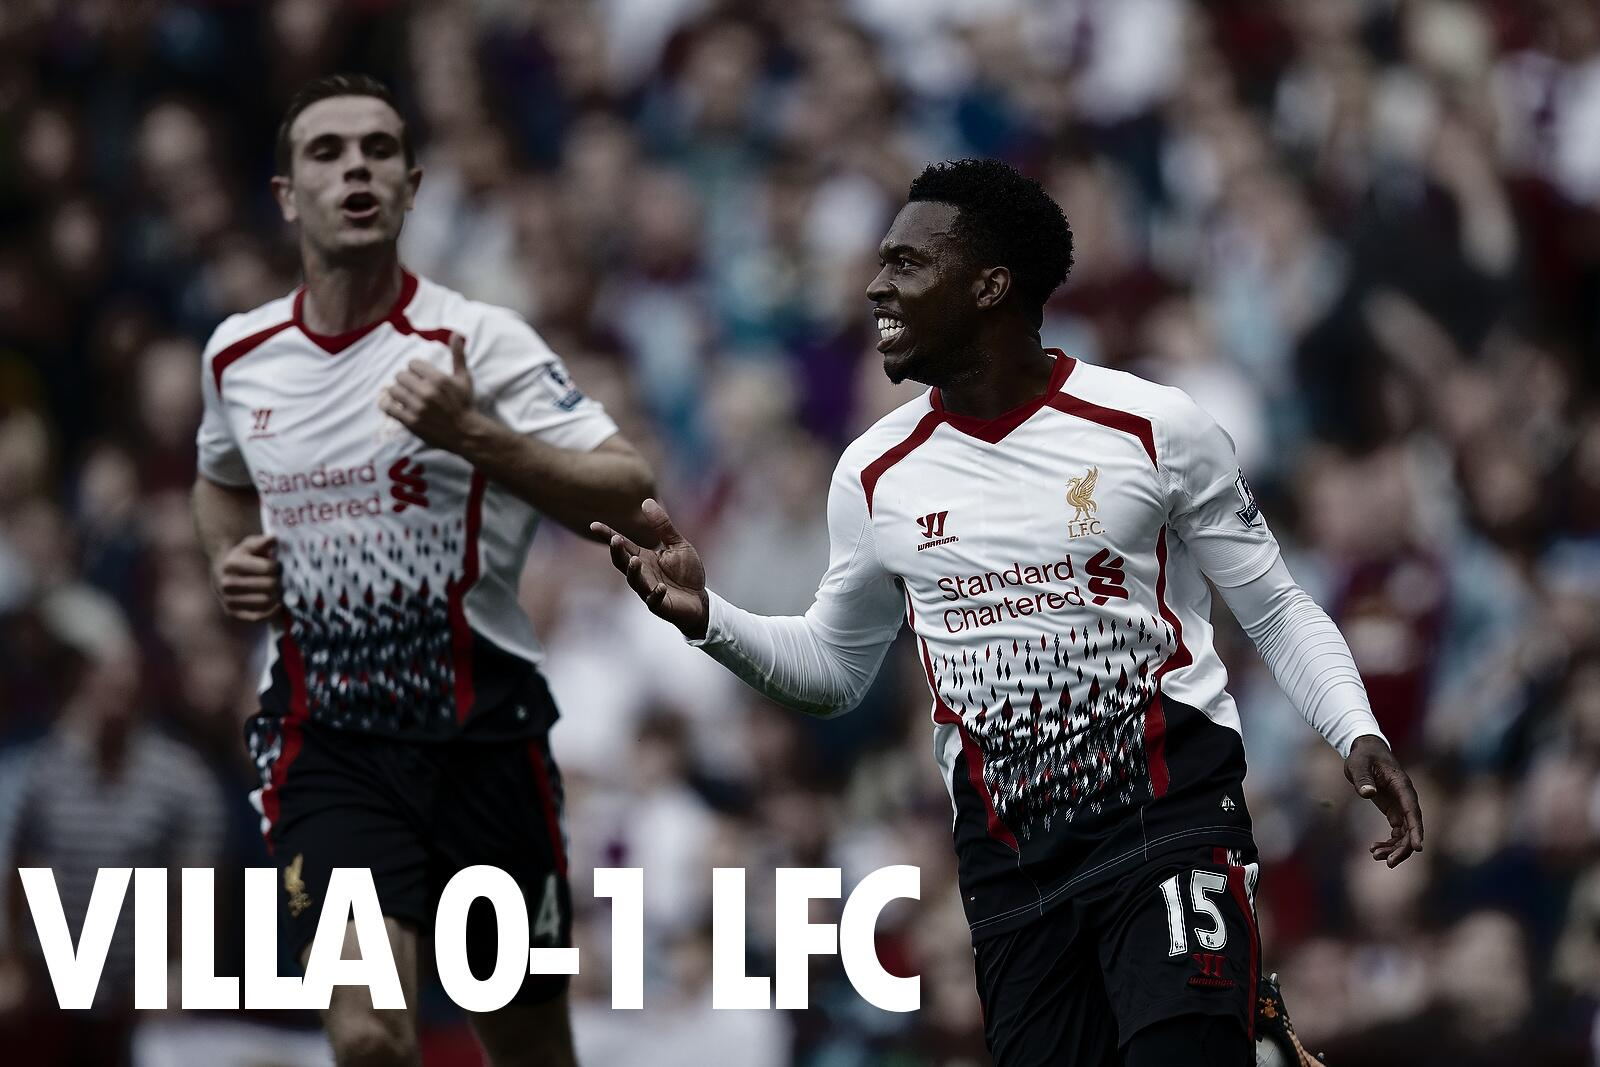 FULL-TIME: A brilliant goal from Daniel Sturridge makes it two wins from two for Liverpool! #AVFC 0-1 #LFC http://t.co/3dpiQ4kayK